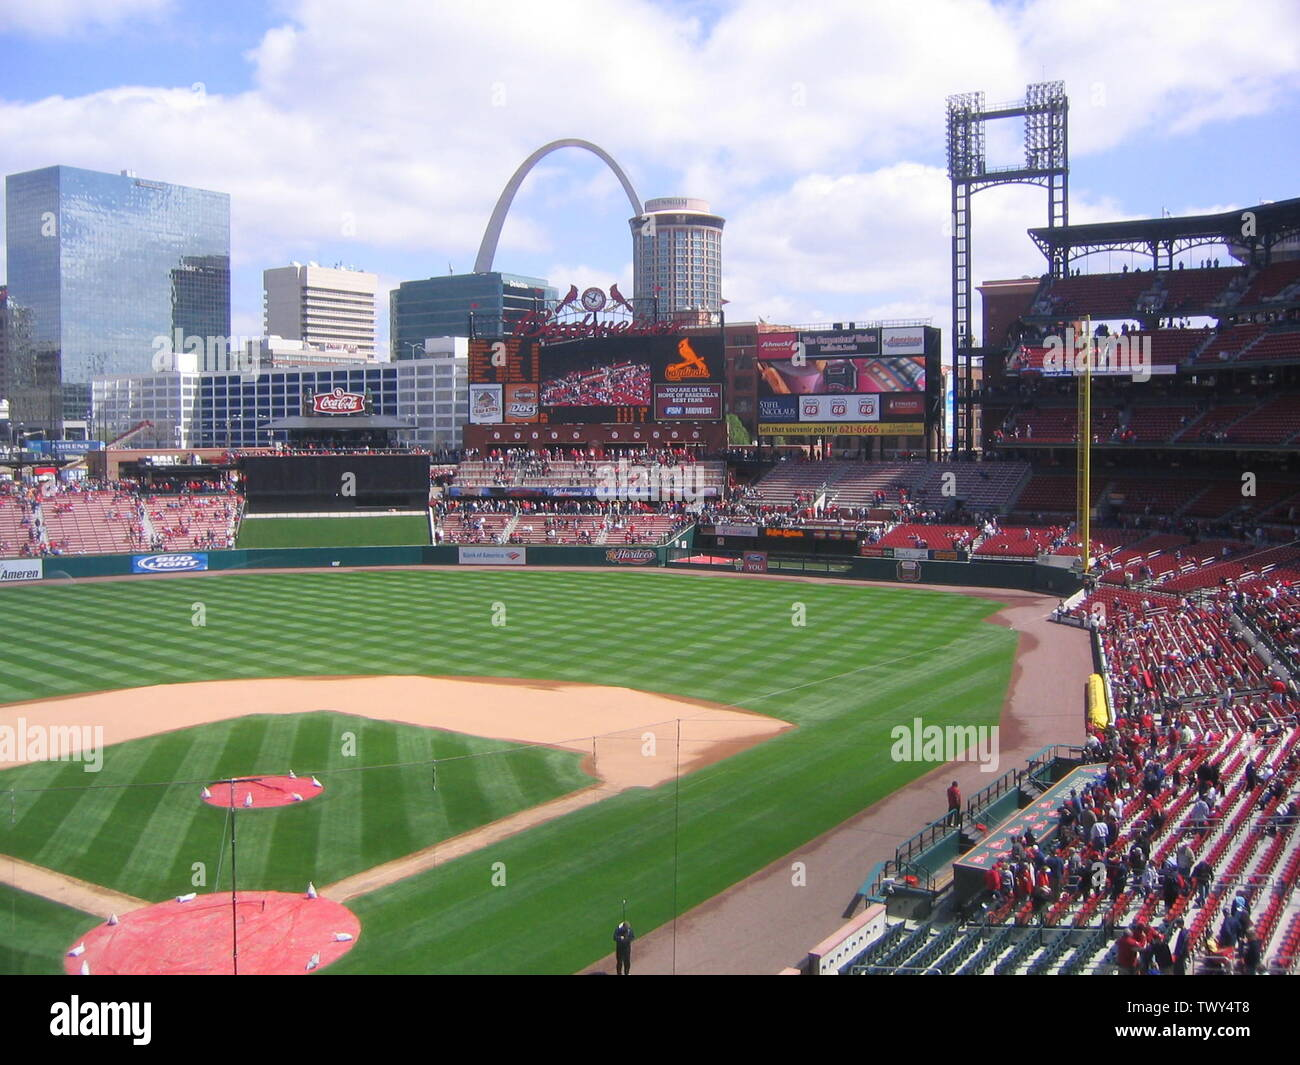 'Image take at Busch Stadium Open House, April 8th 2006  16:03, 28 April 2006 . . Mdglazerman . . 2048×1536 (1,175,011 bytes); Commons upload by Soxrock 11:08, 19 August 2007 (UTC); From en.wikipedia; description page is (was) here; User Mdglazerman on en.wikipedia; ' - Stock Image